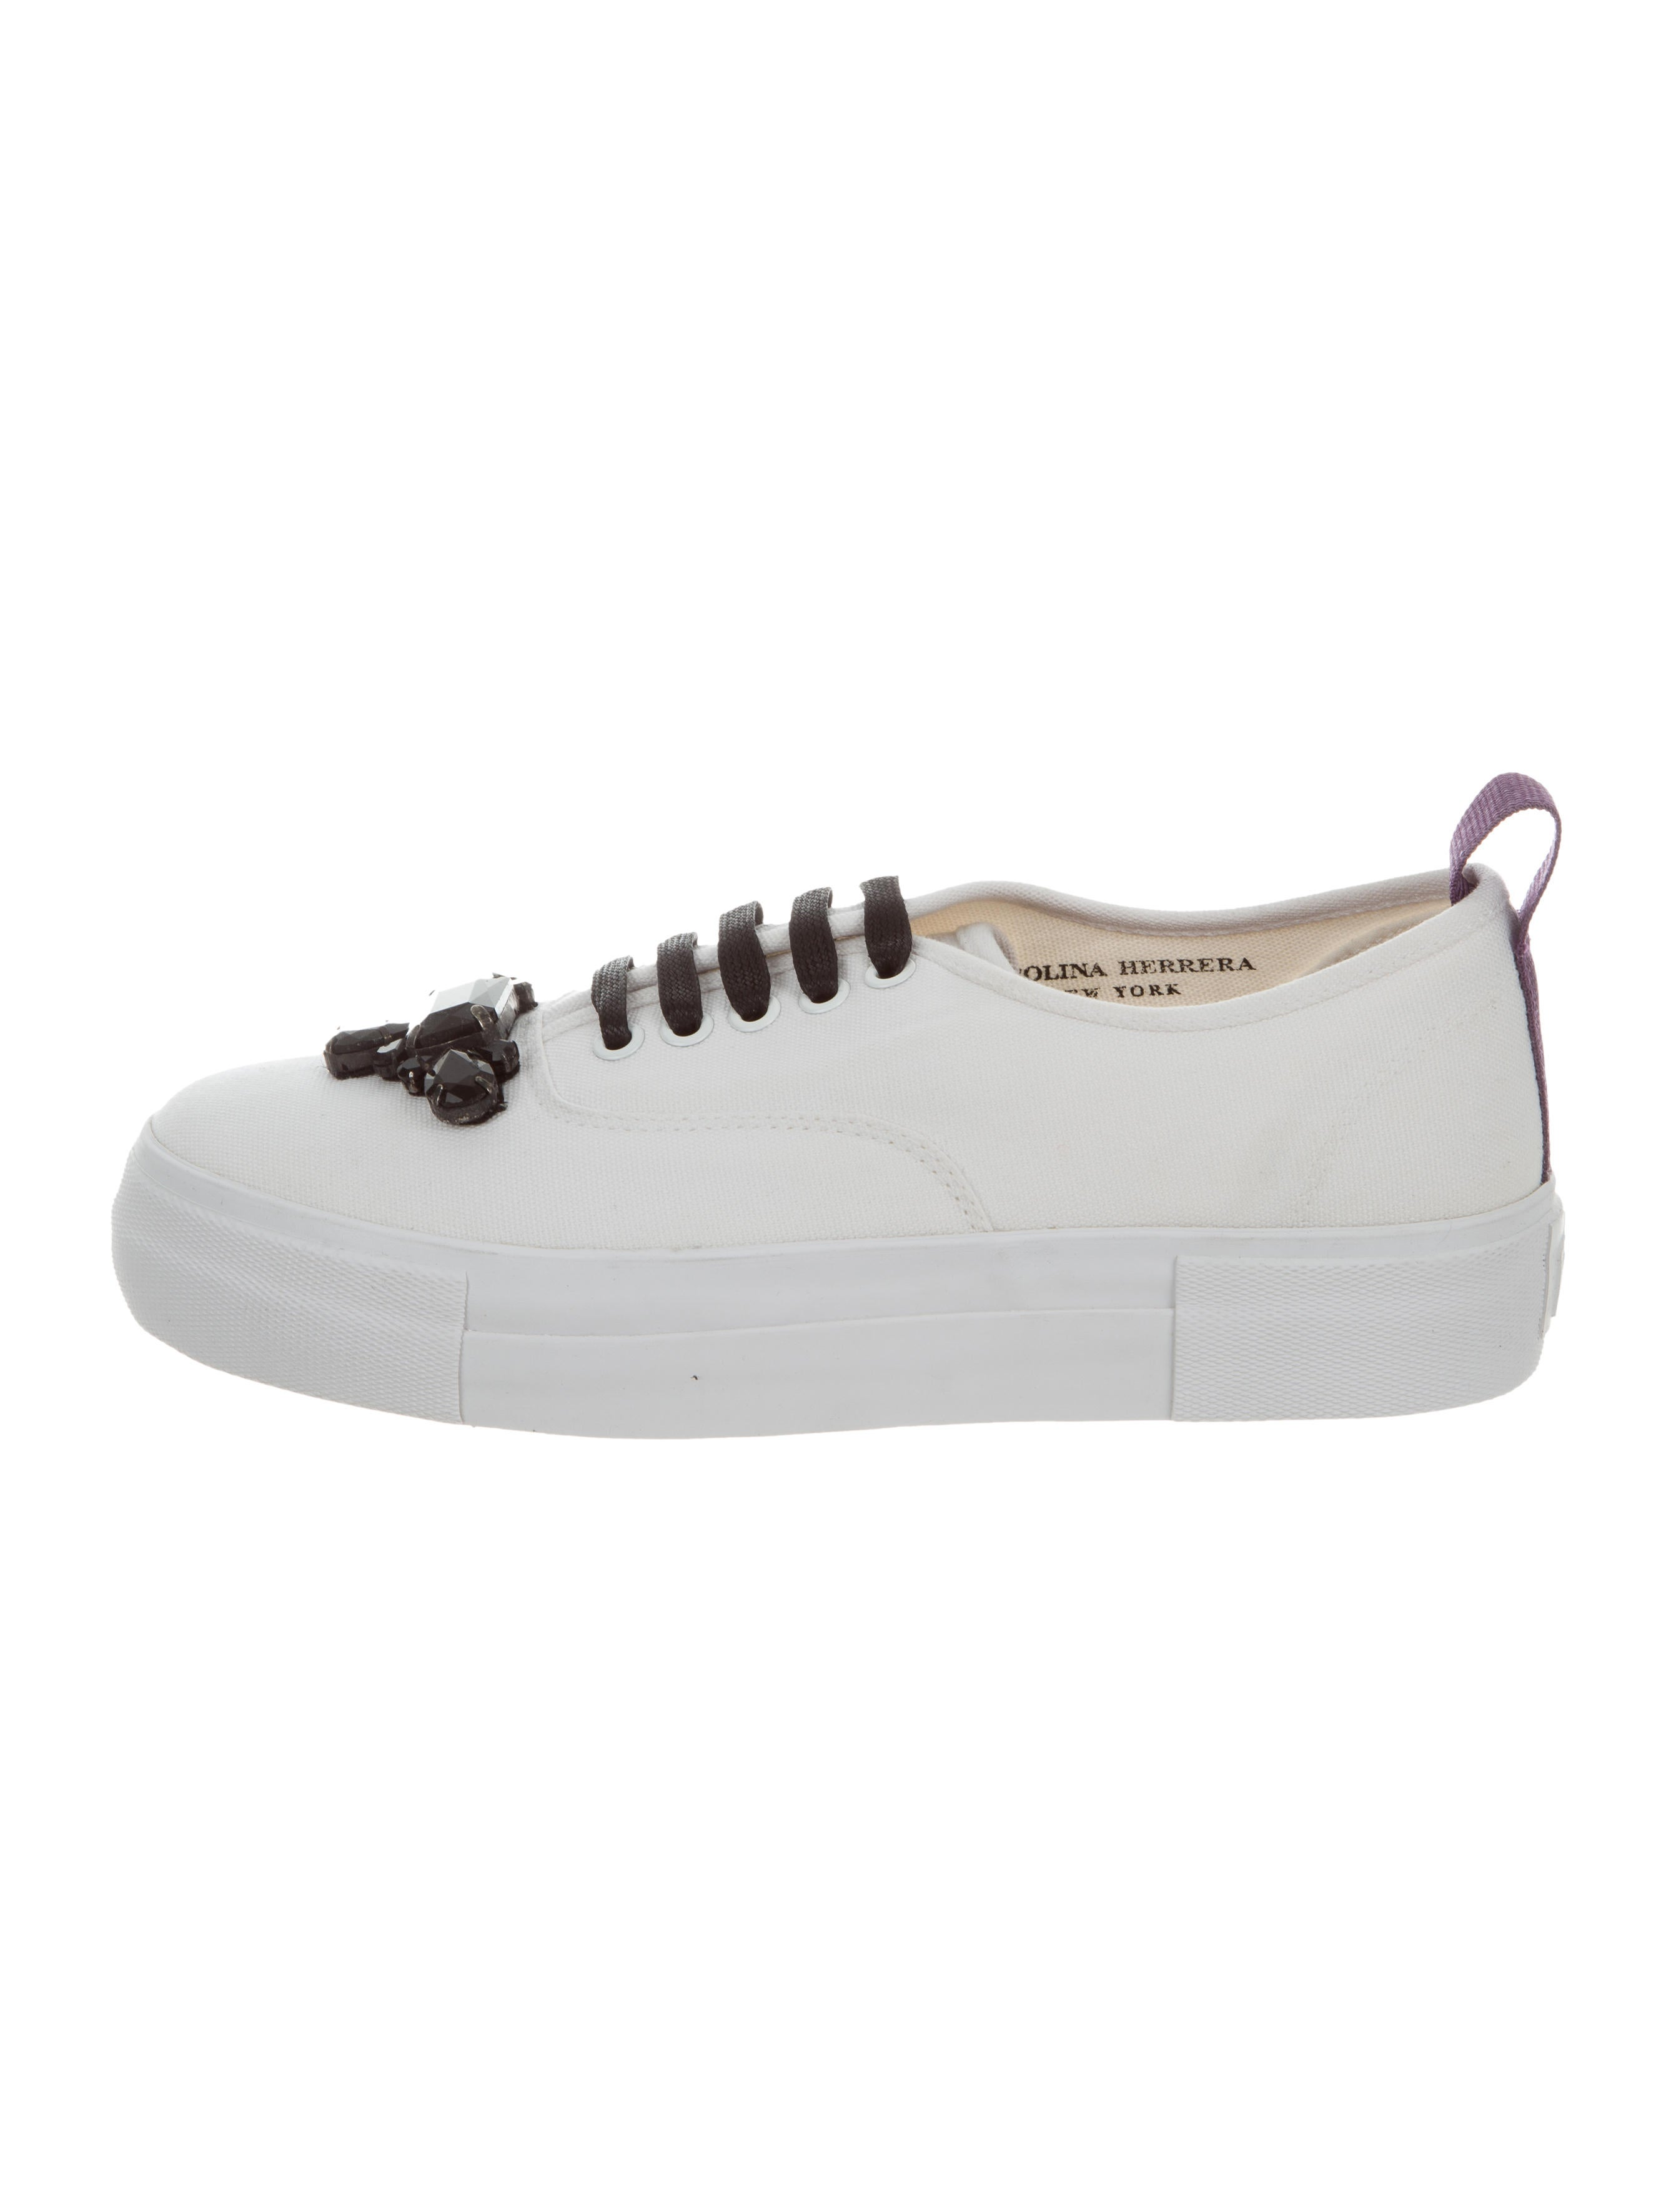 Eytys x Carolina Herrera 2016 Embellished Low-Top Sneakers w/ Tags outlet low price fee shipping store sale buy cheap browse rgOwAEW